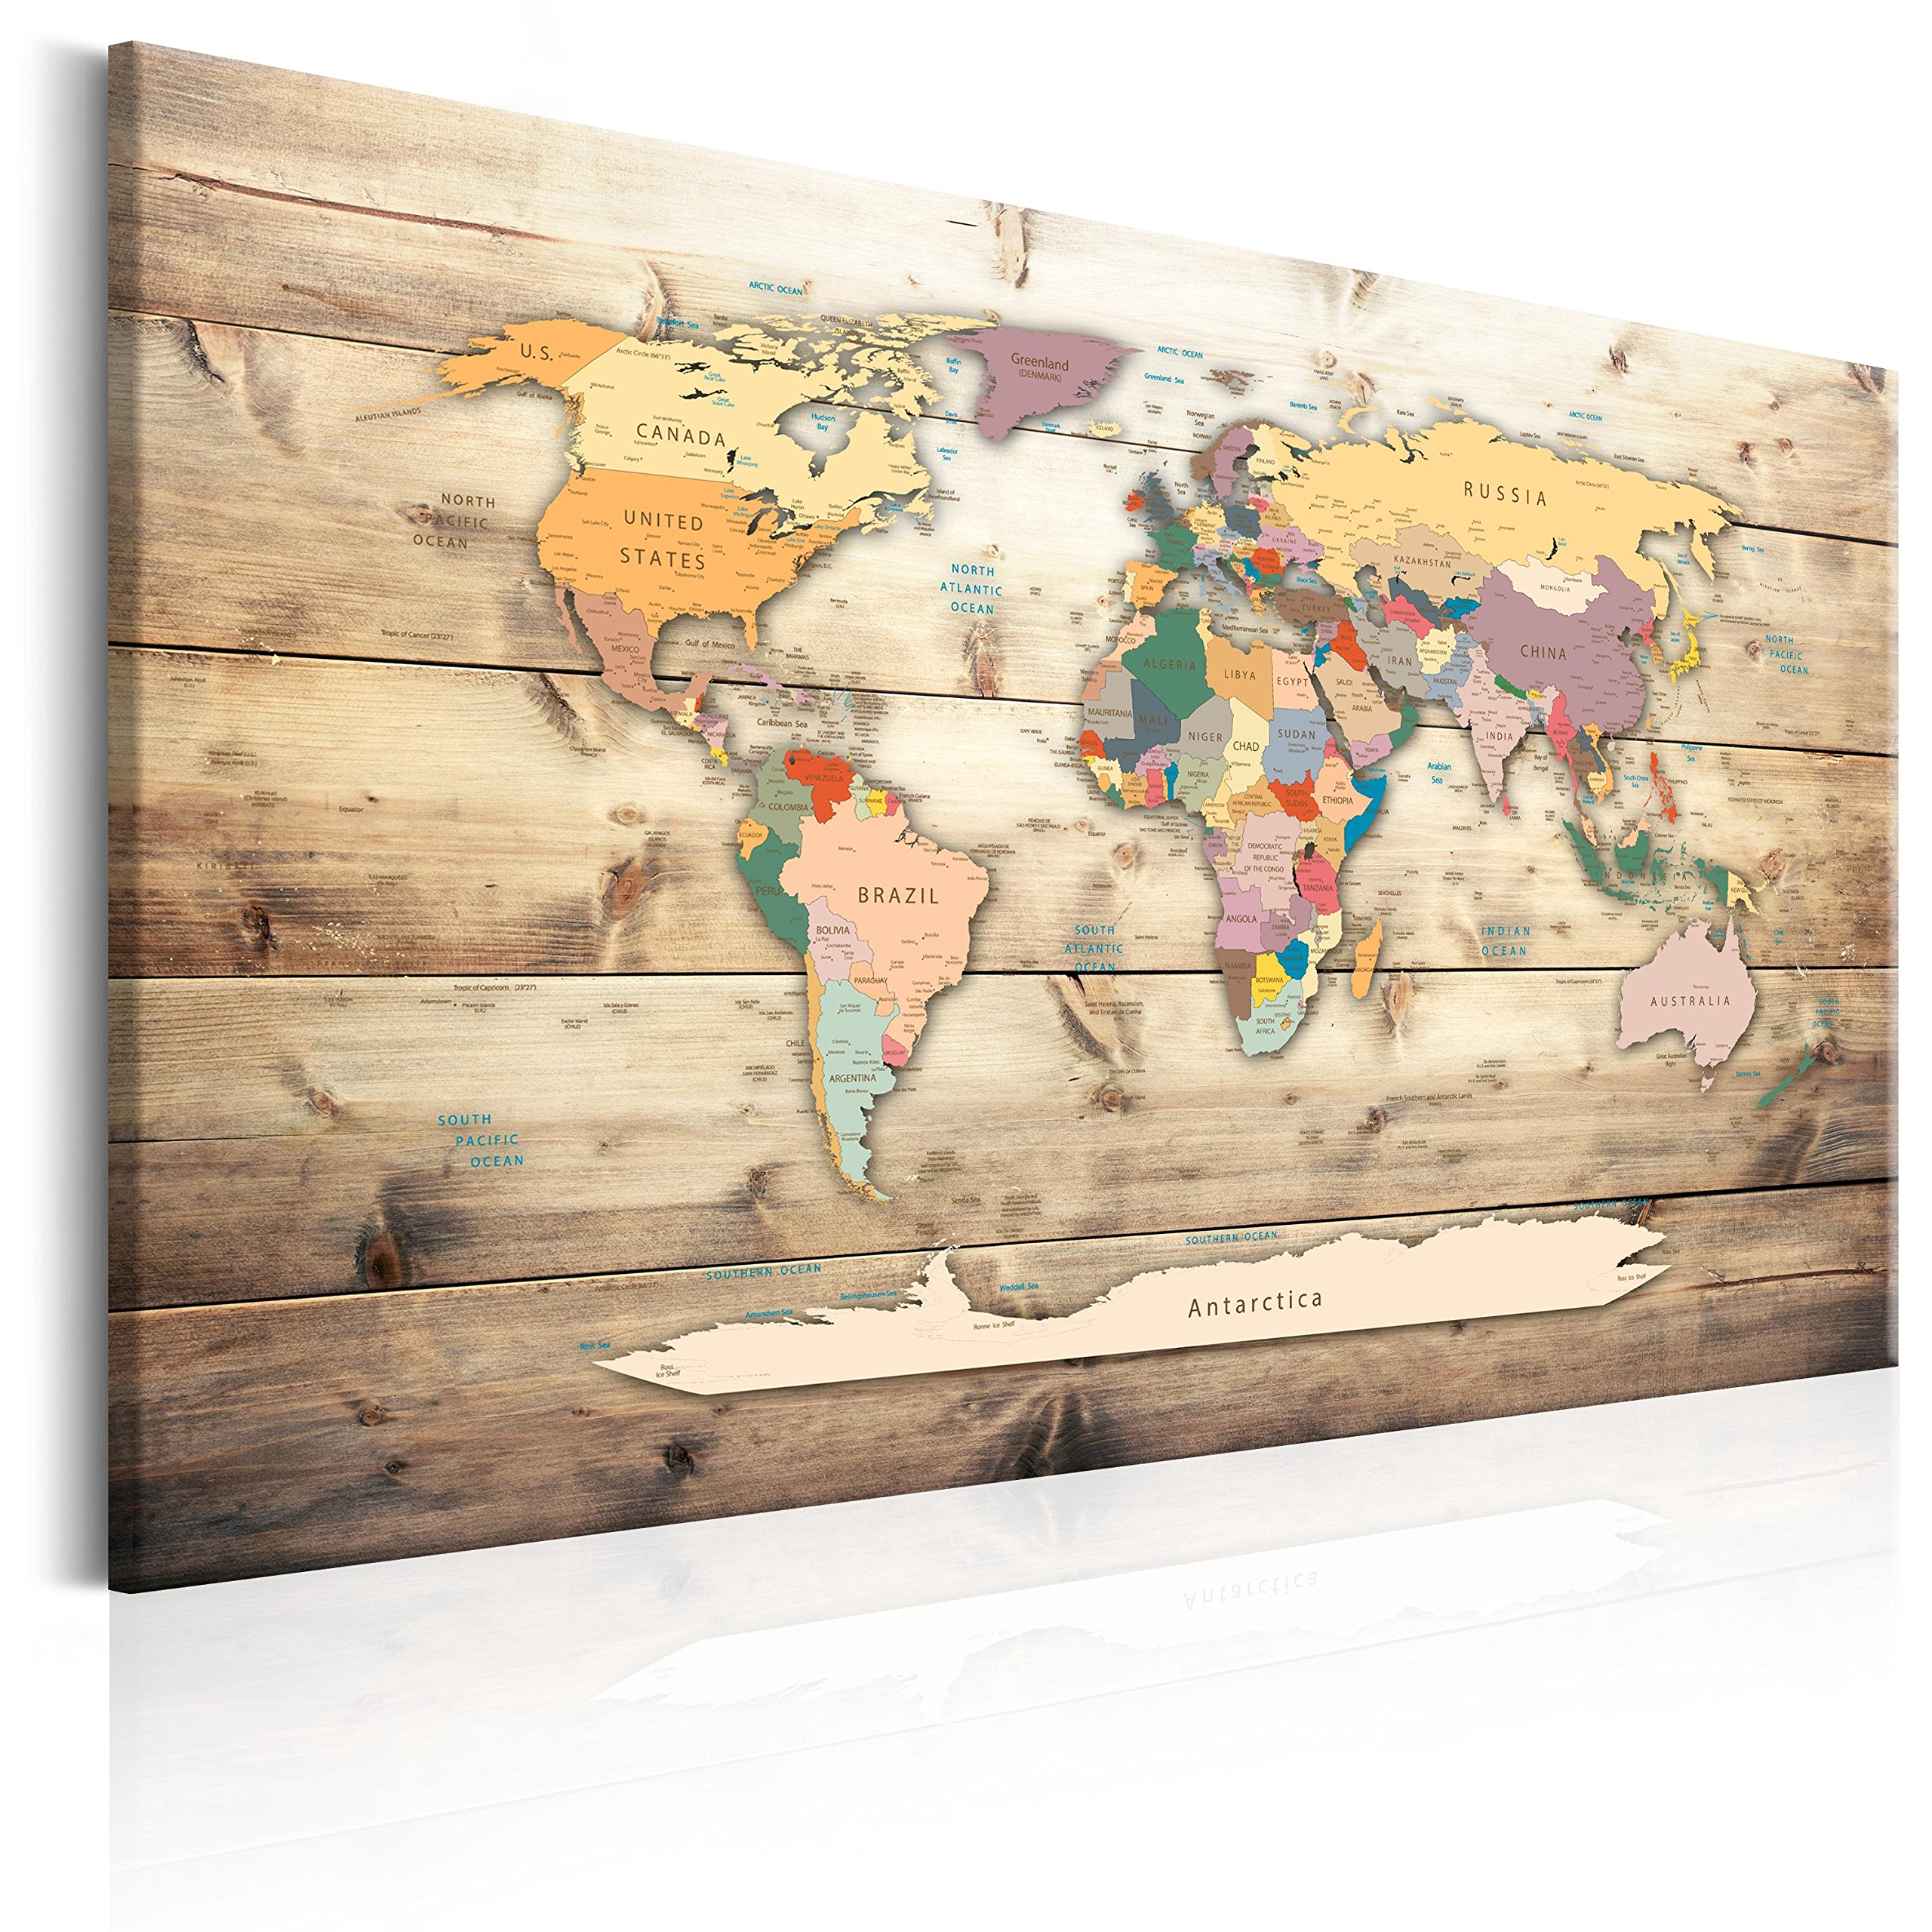 Pin map amazon pinboard map 90x60 cm 354 by 236 gumiabroncs